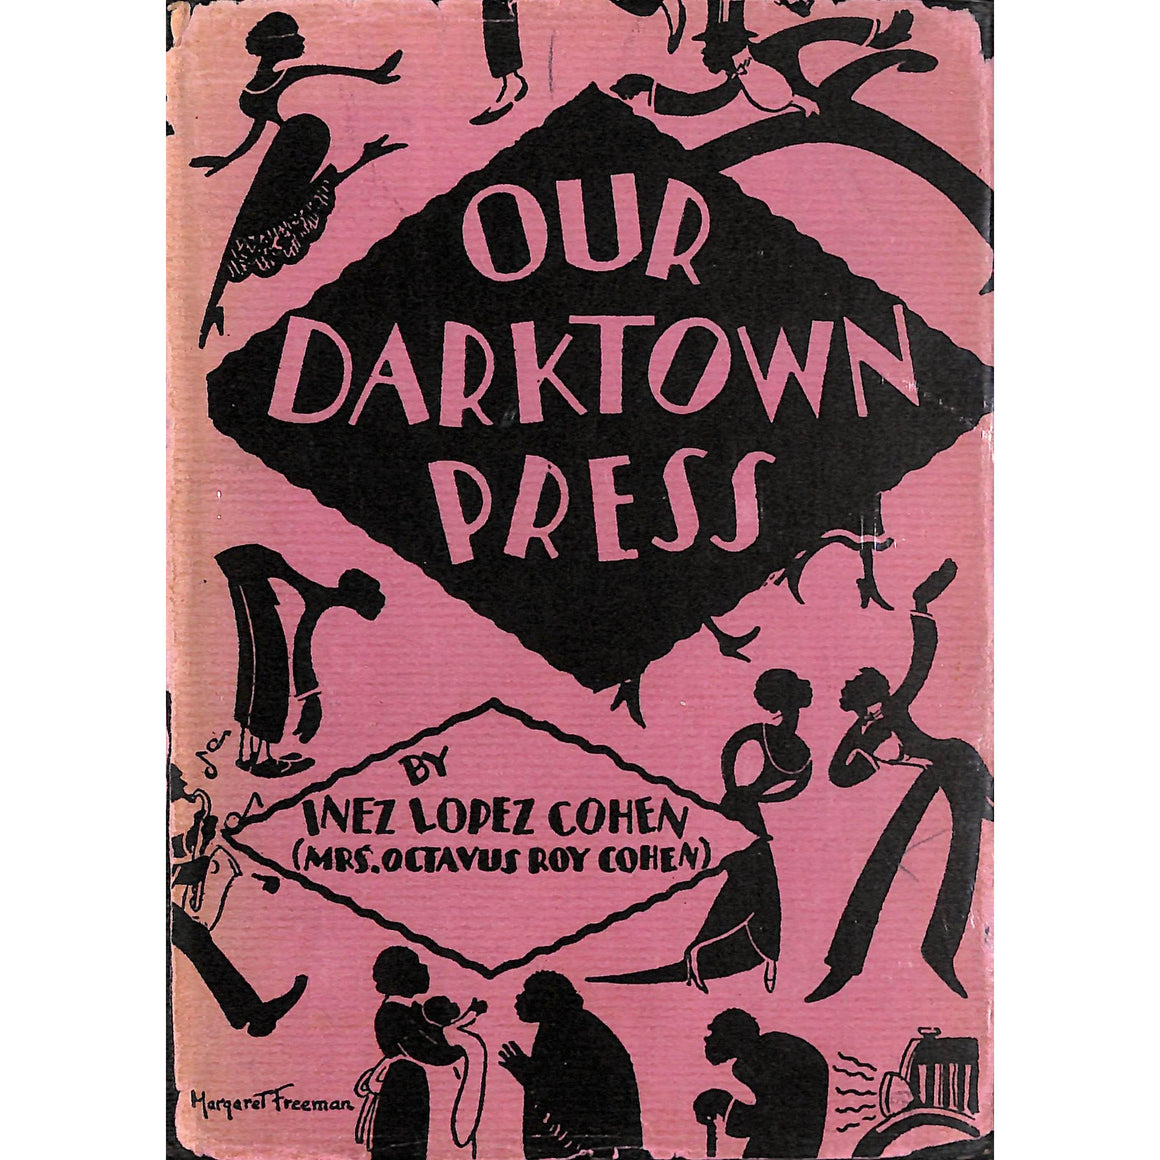 Our Darktown Press